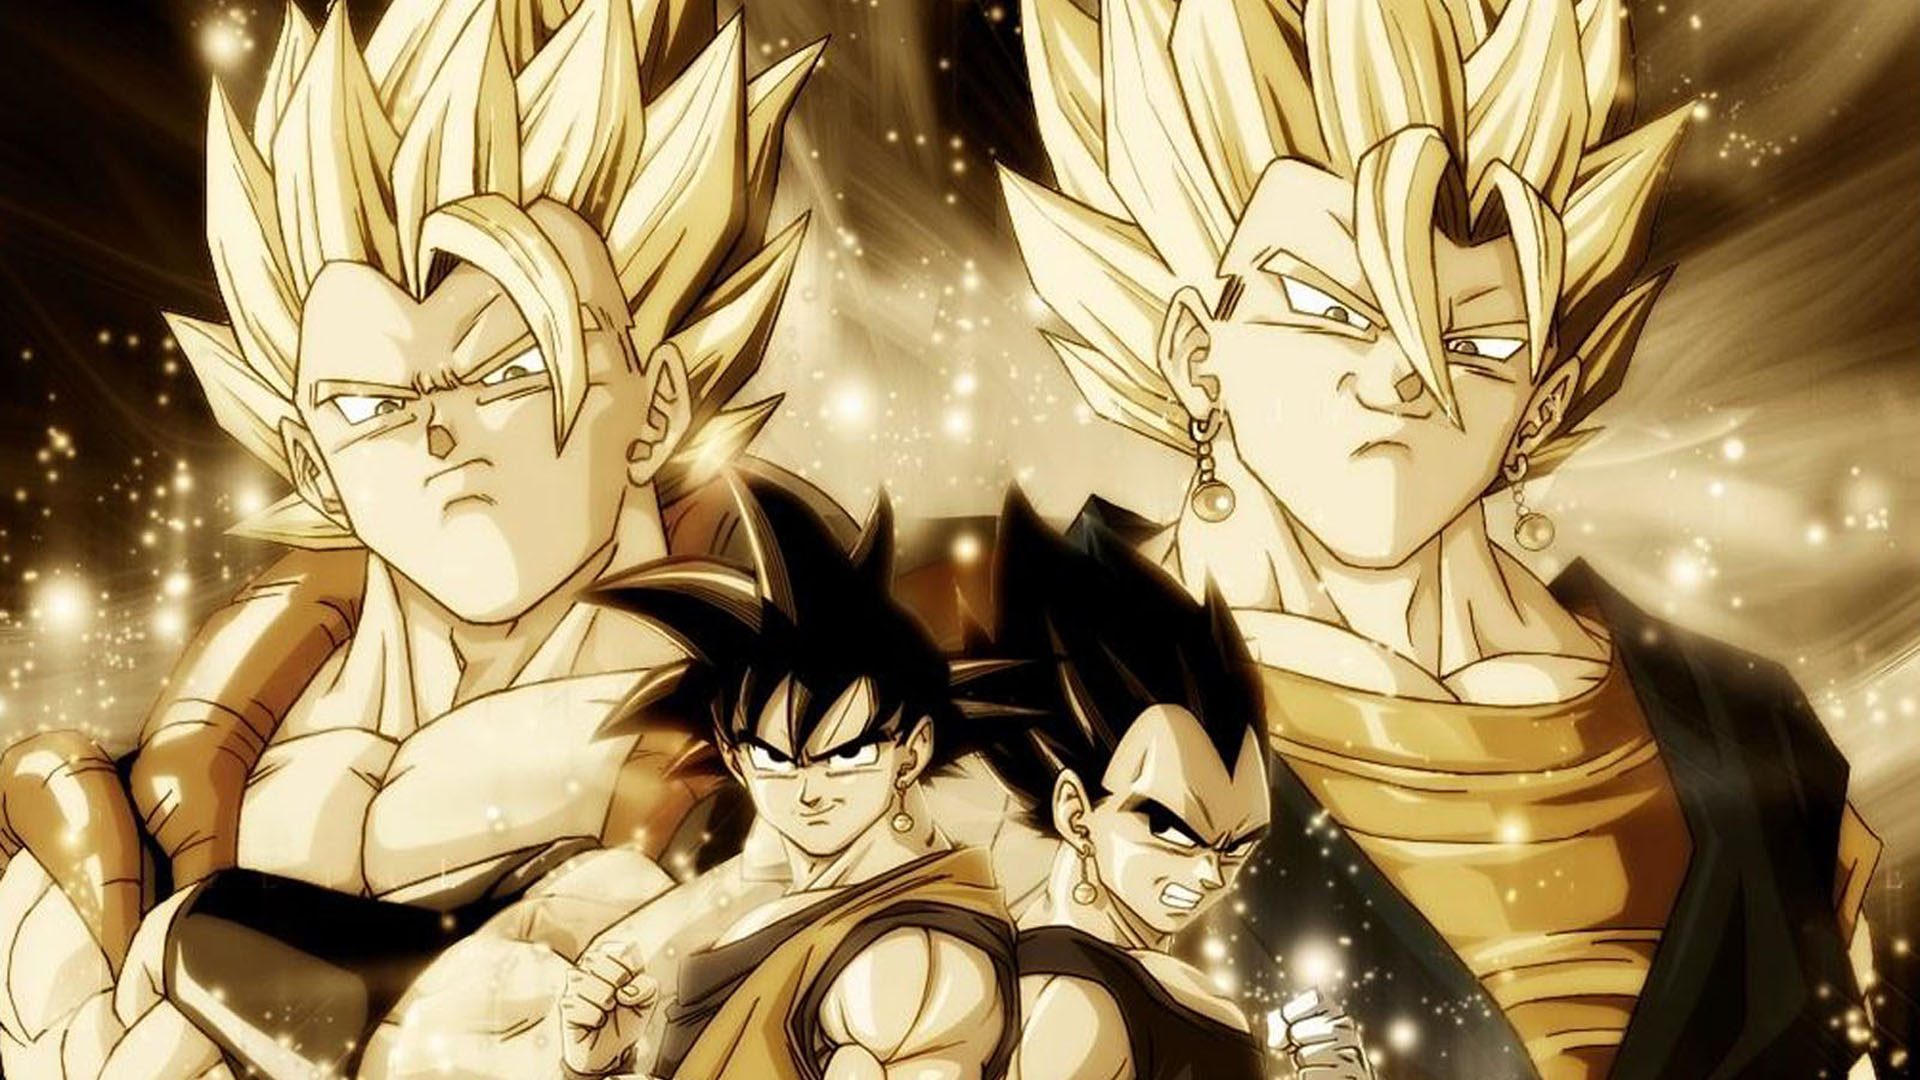 Hd wallpaper vegeta - Dbz Hd Wallpaper 1920x1080 Wallpapersafari